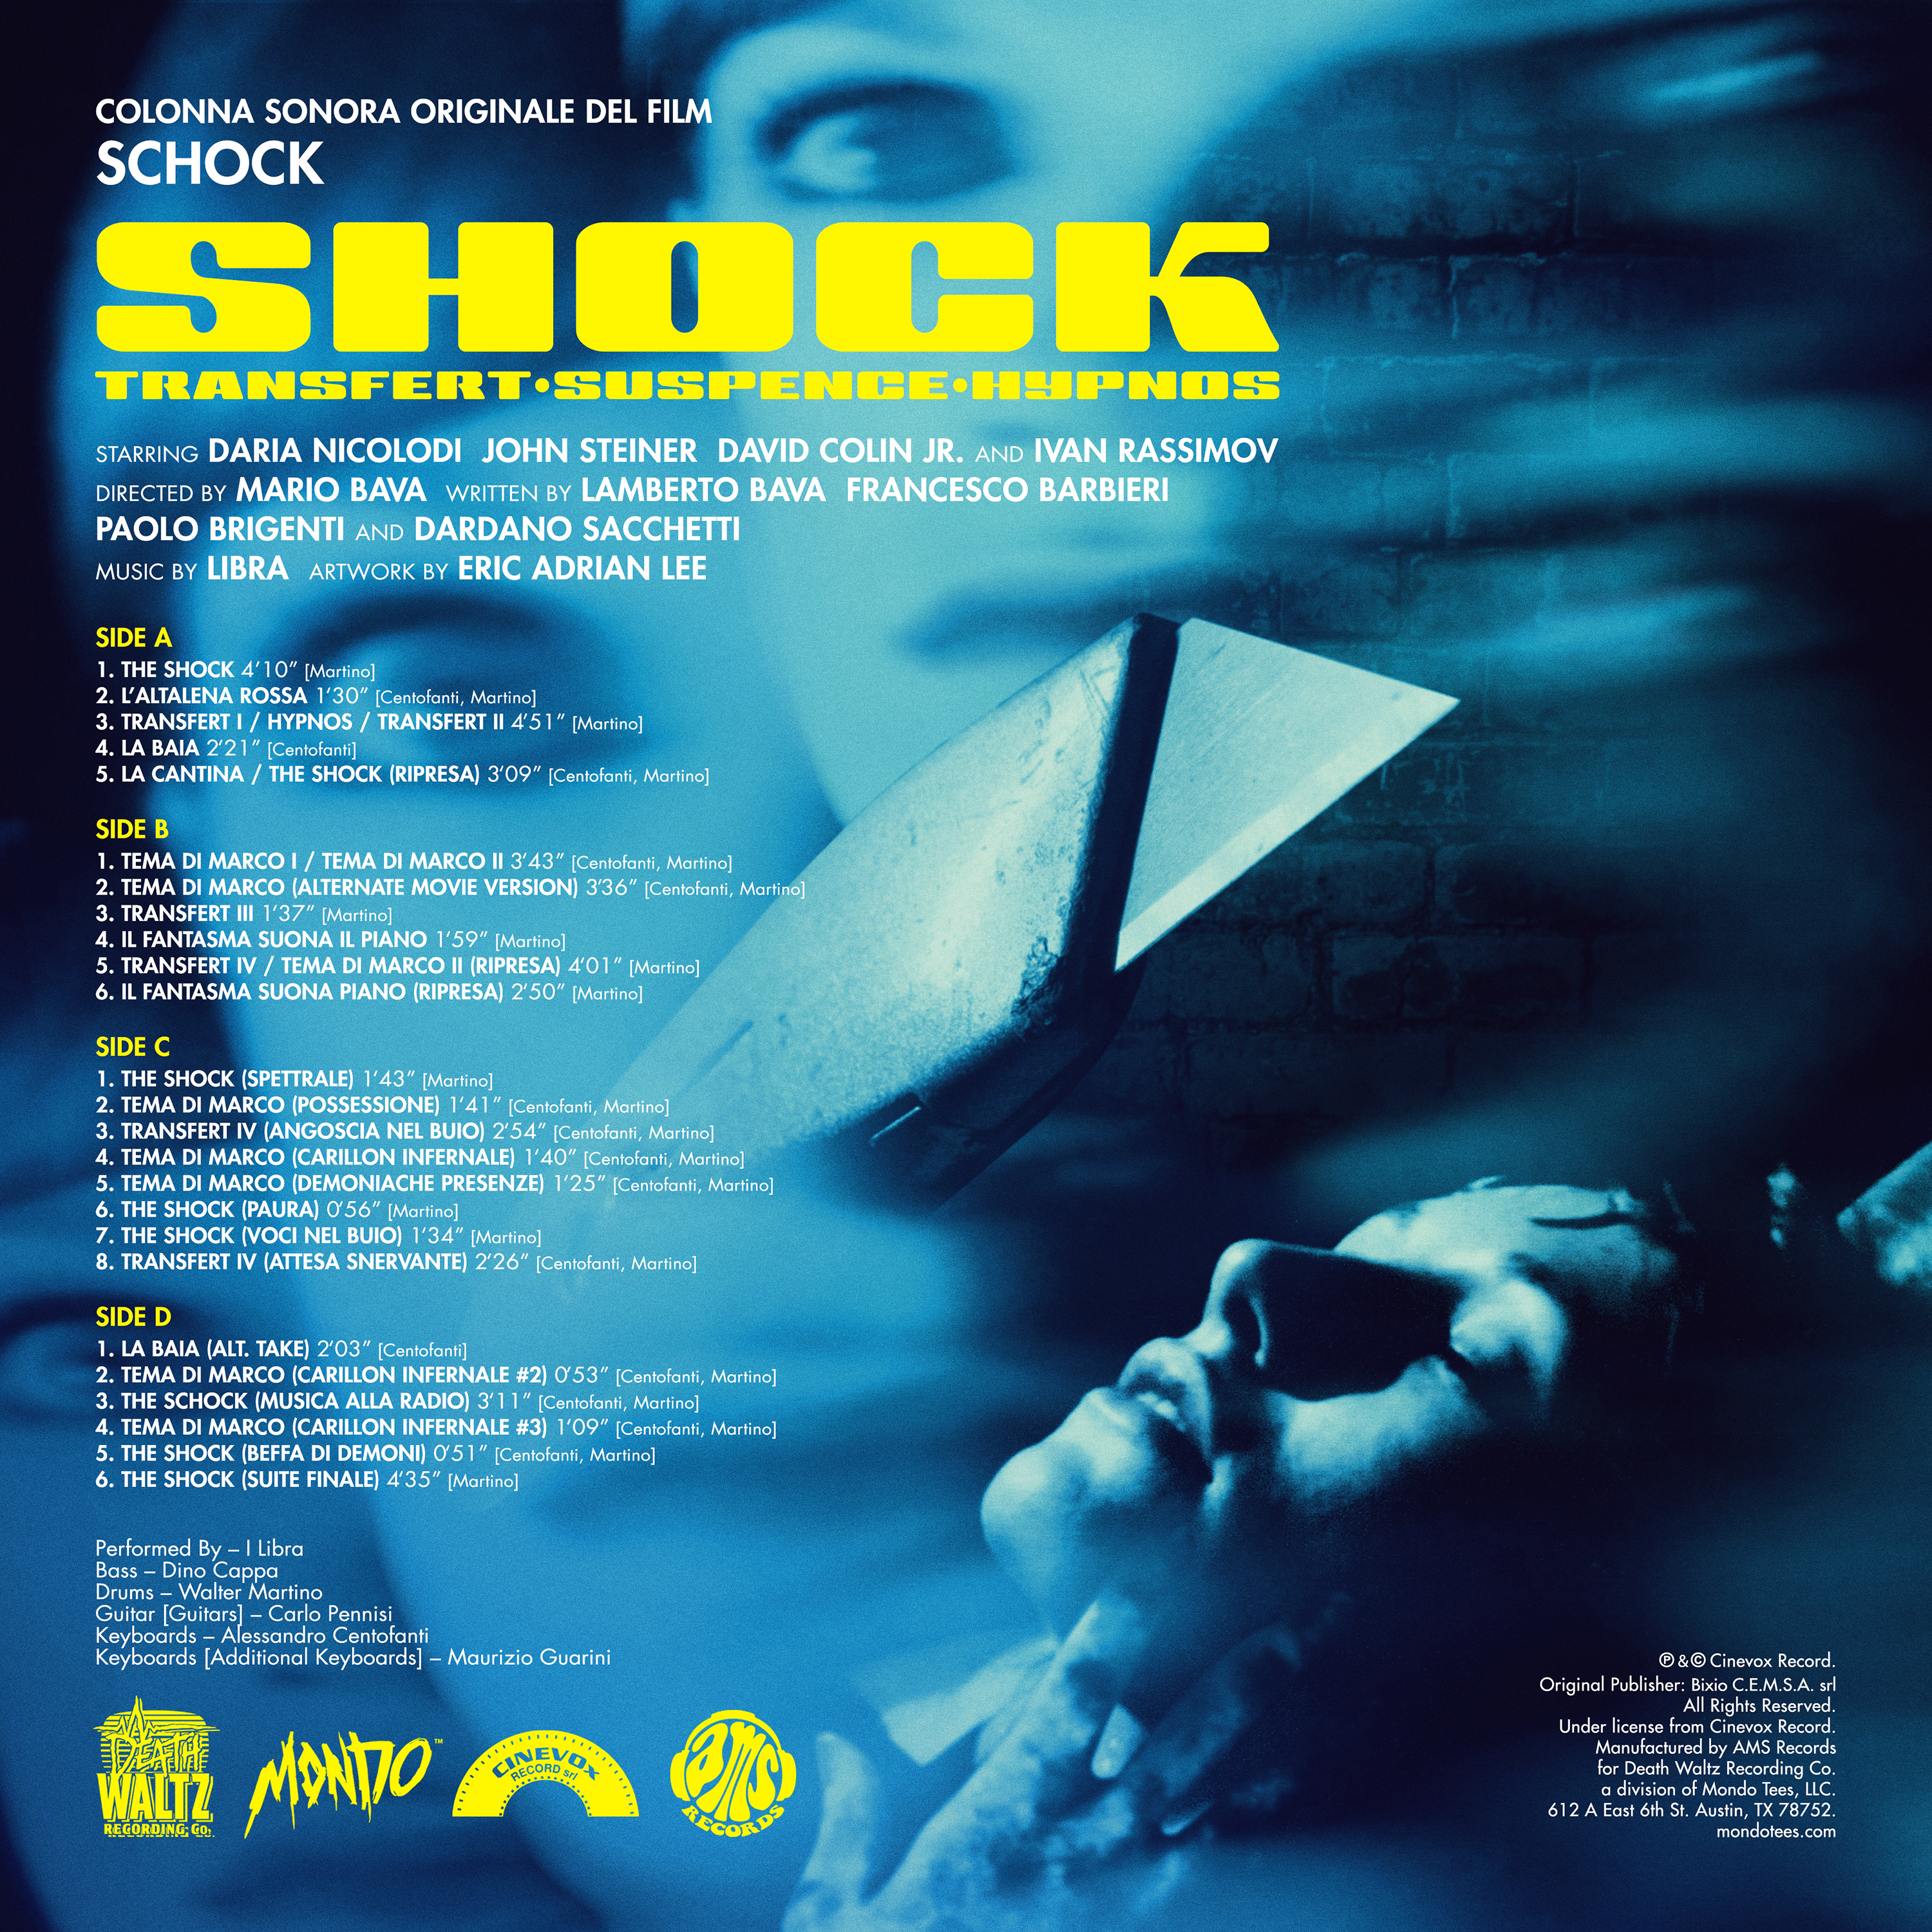 SHOCK (Original Motion Picture Soundtrack)